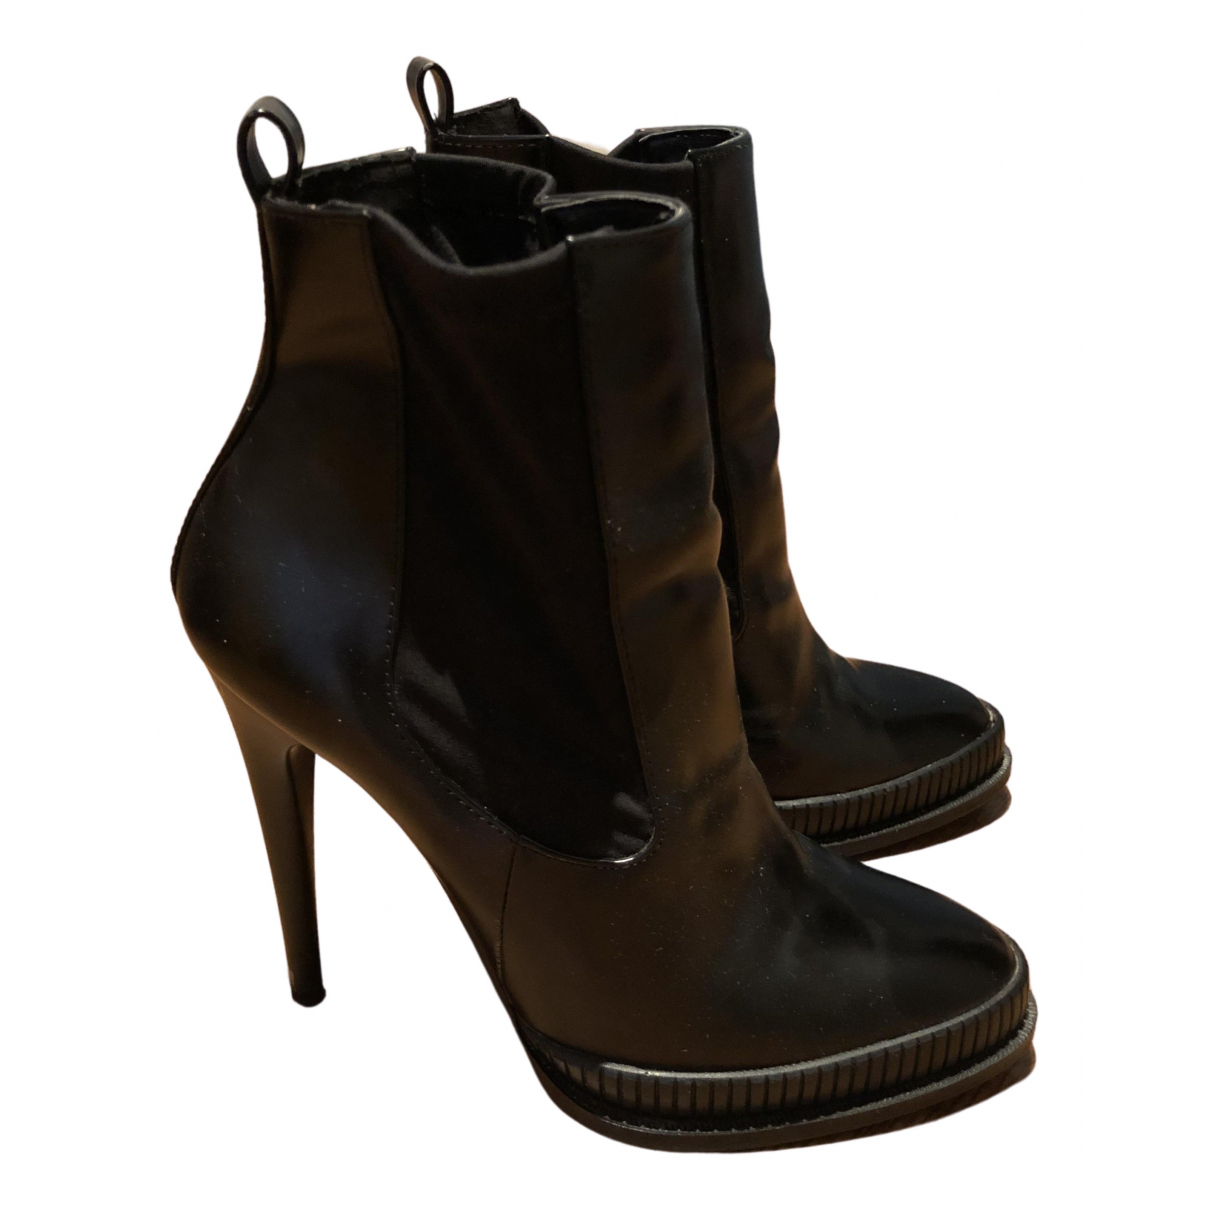 Zara N Black Leather Ankle boots for Women 39 EU